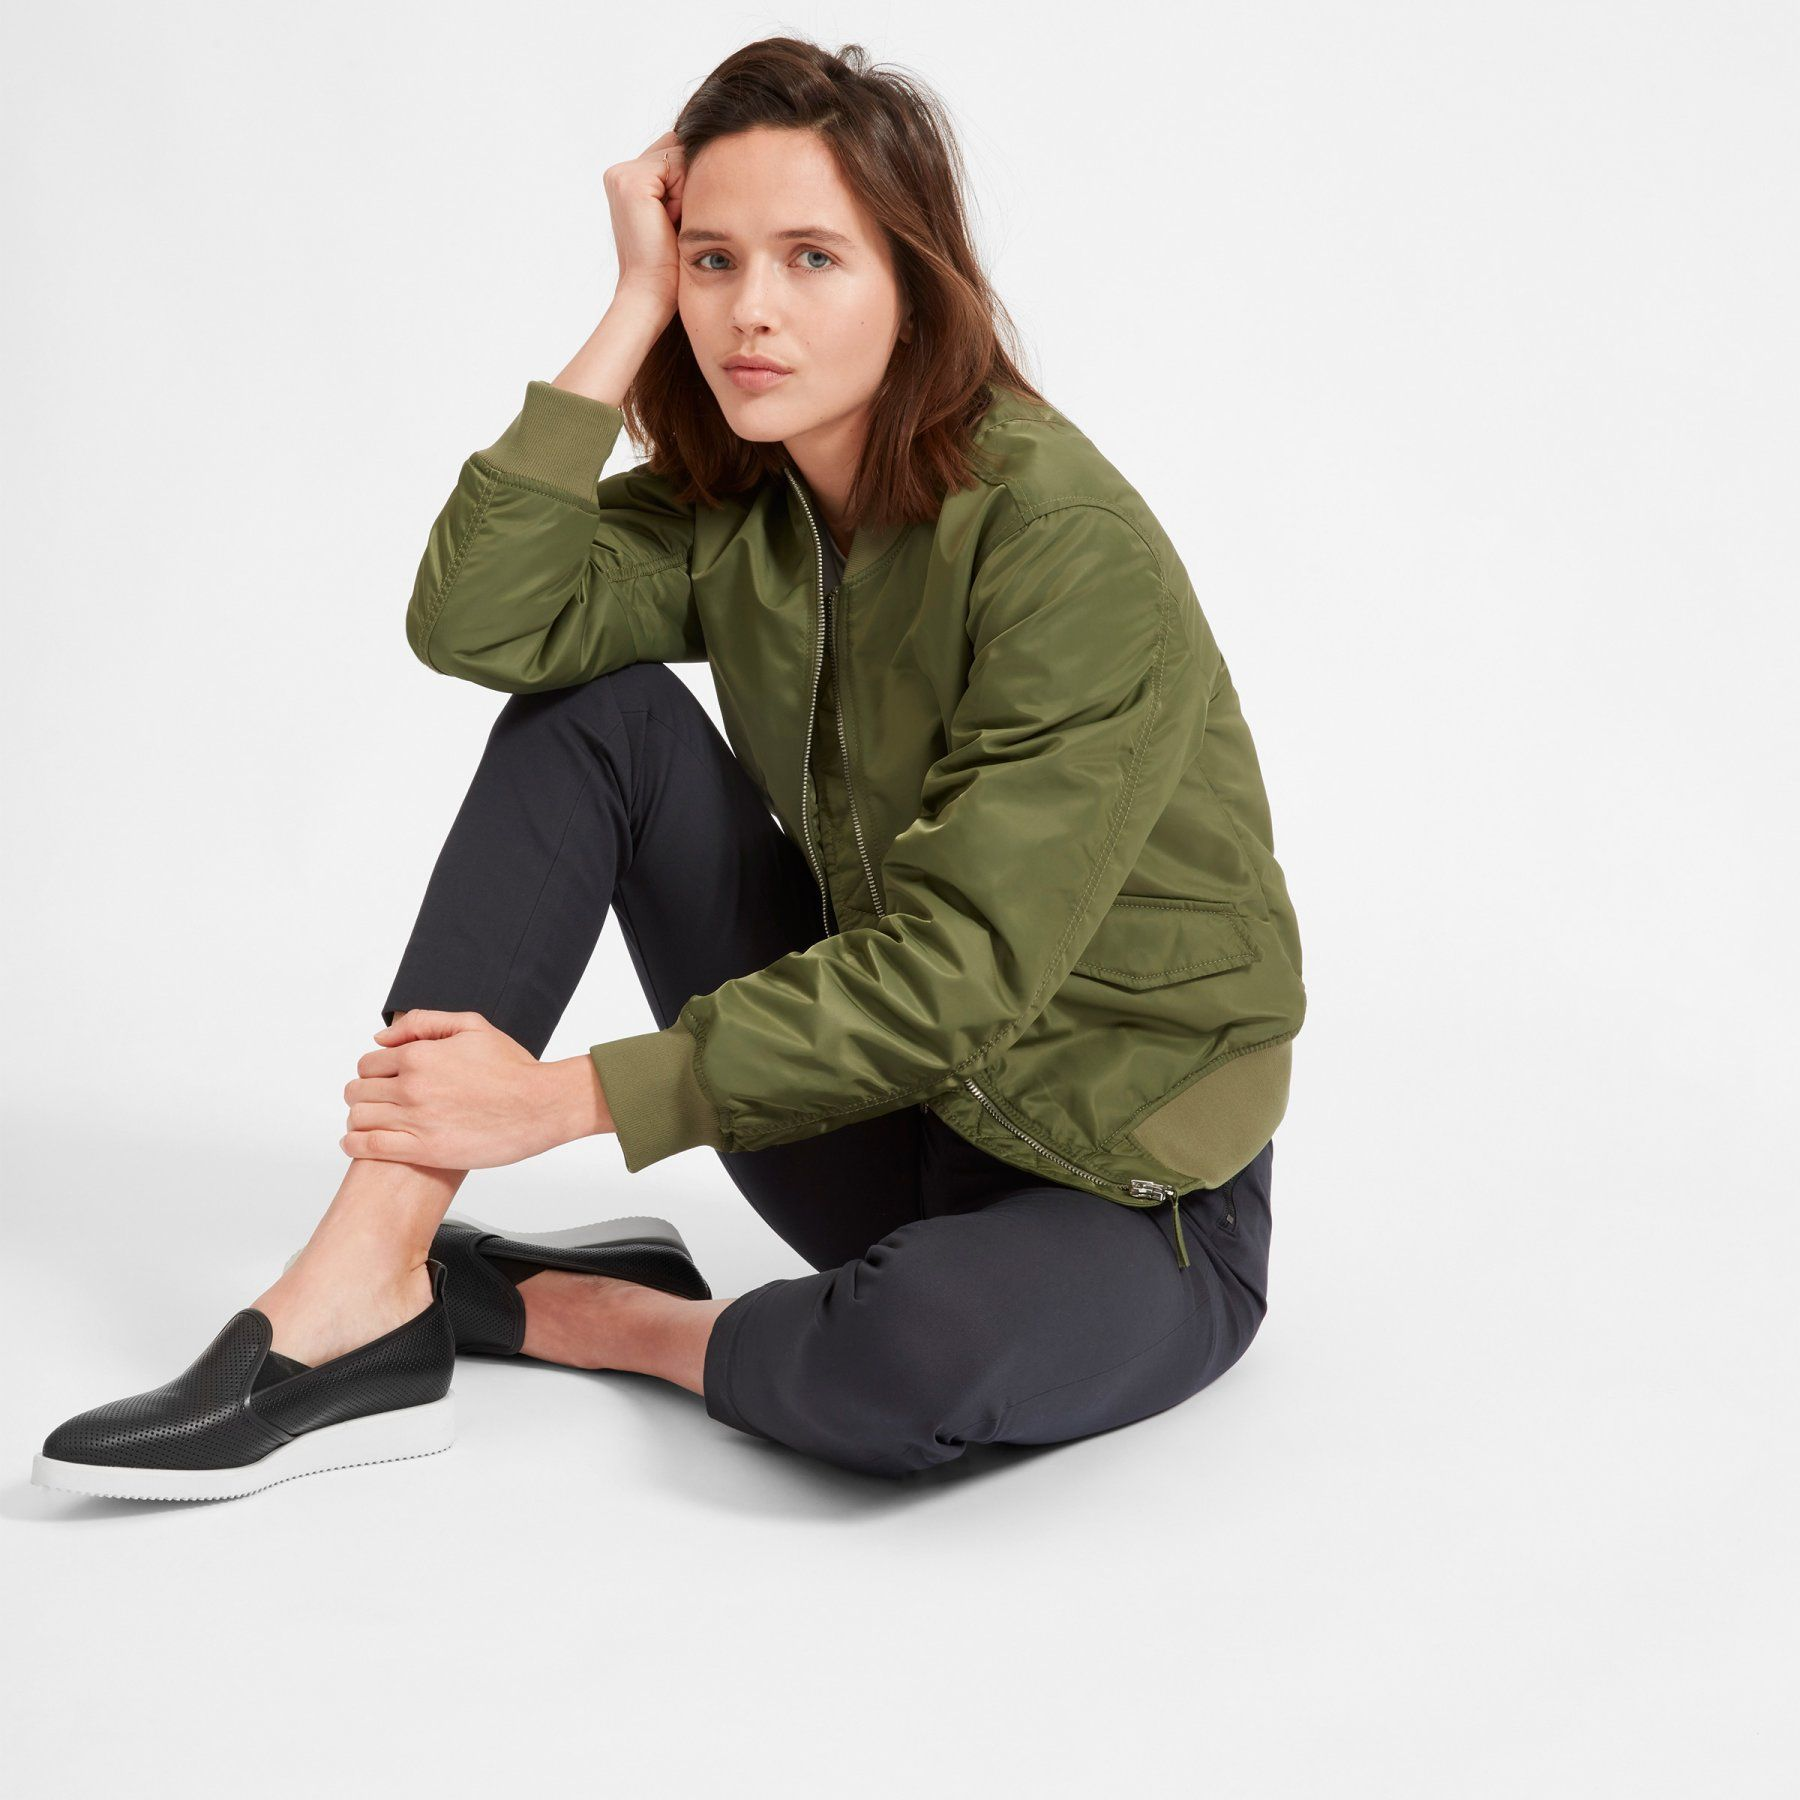 Women's Leather Street Shoe | Everlane (With images